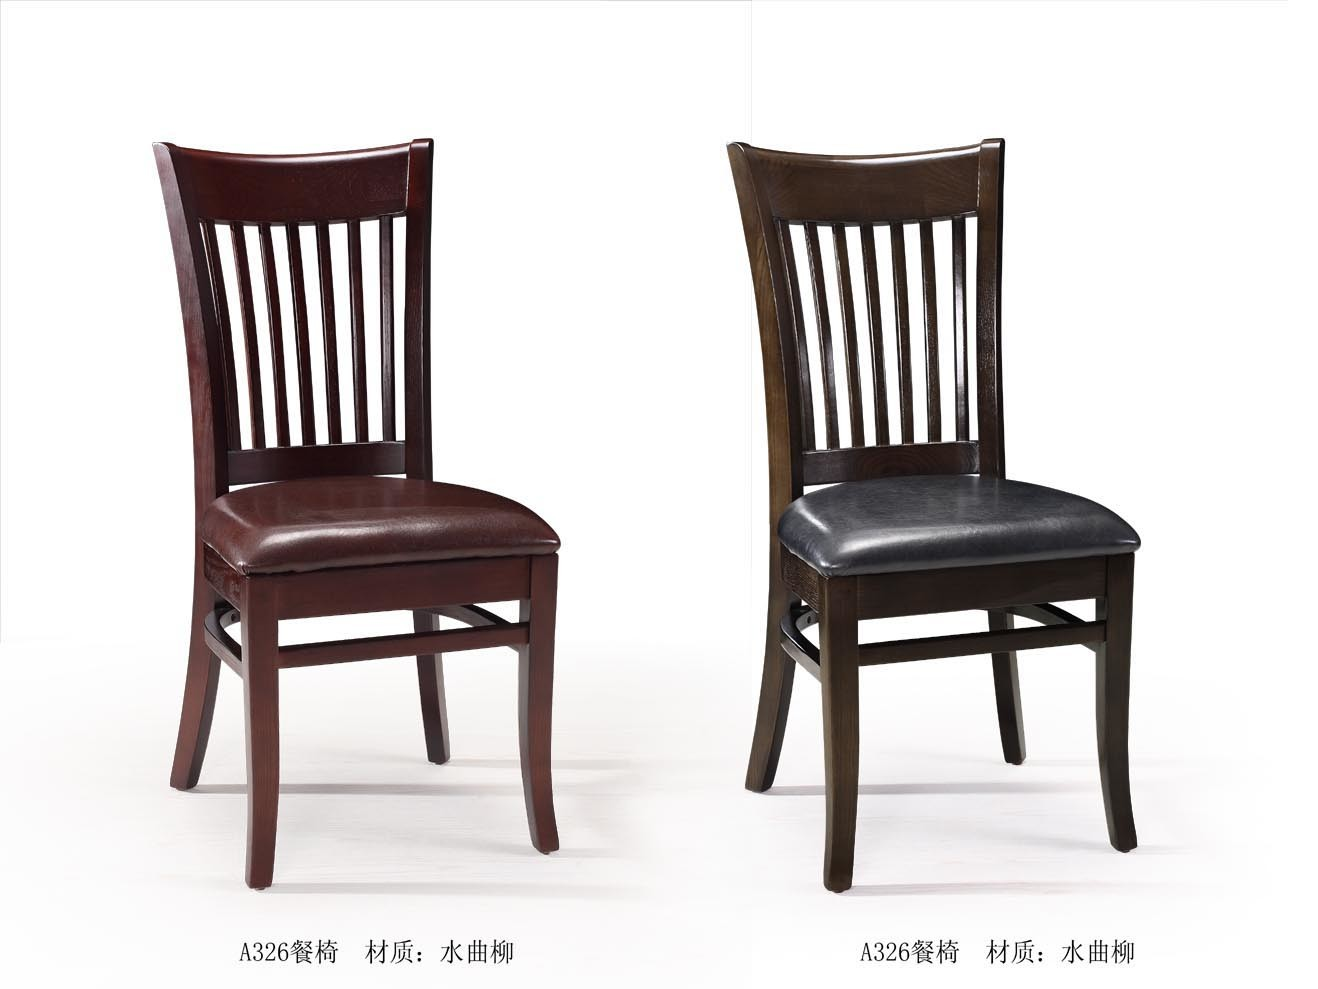 Select solid modern wooden dining chairs for your beautiful home.